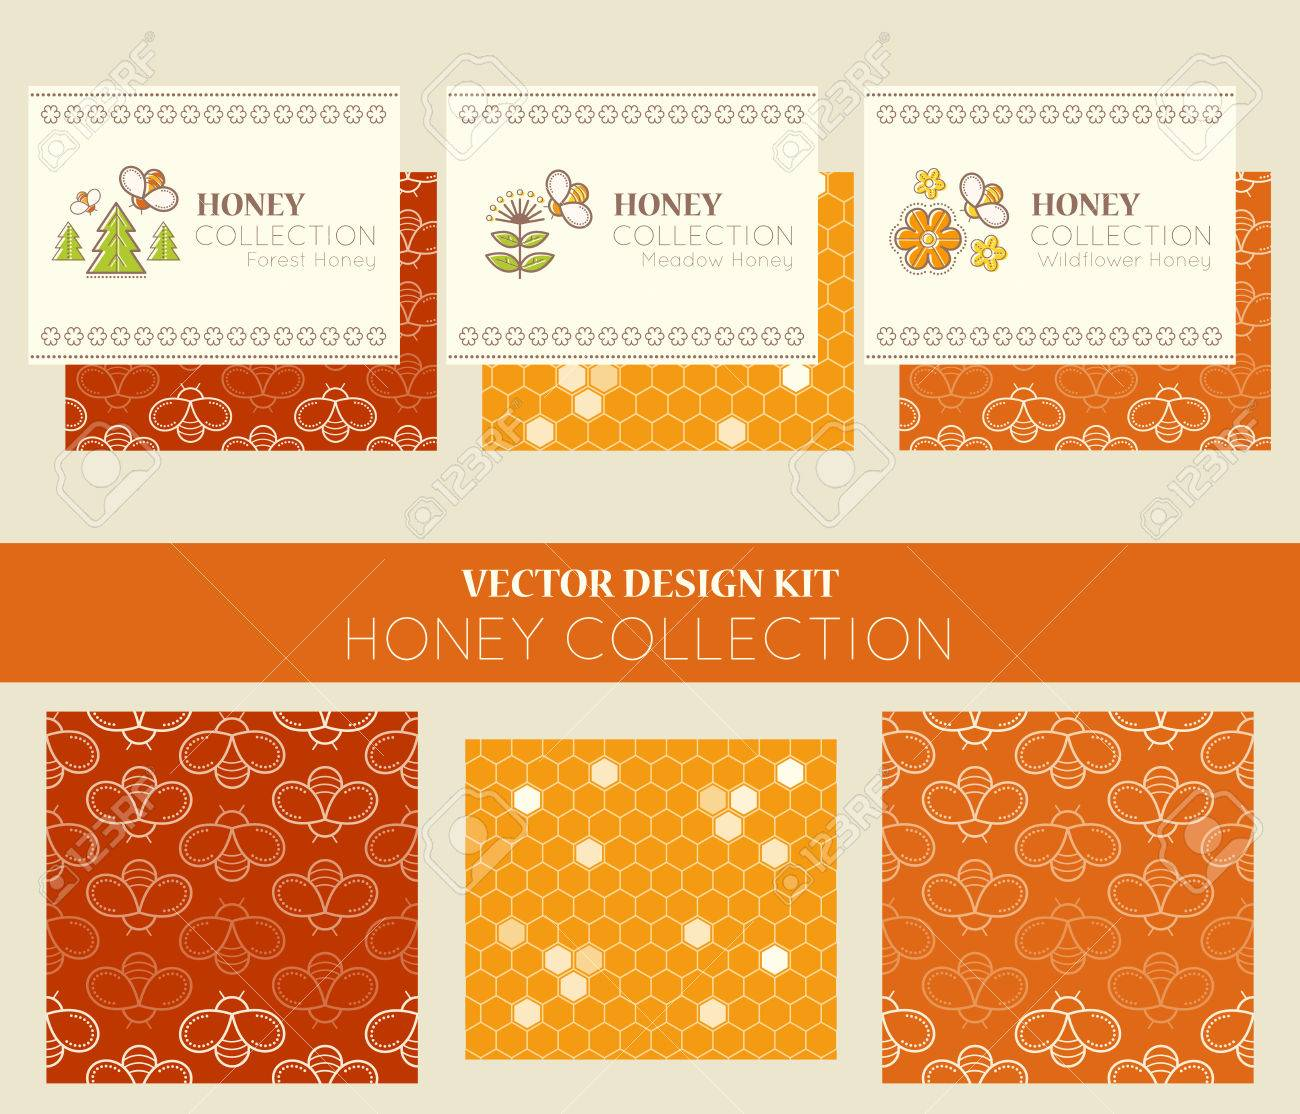 Vector design kit with business card templates and seamless patterns vector vector design kit with business card templates and seamless patterns natural honey collection types of honey forest honey meadow honey colourmoves